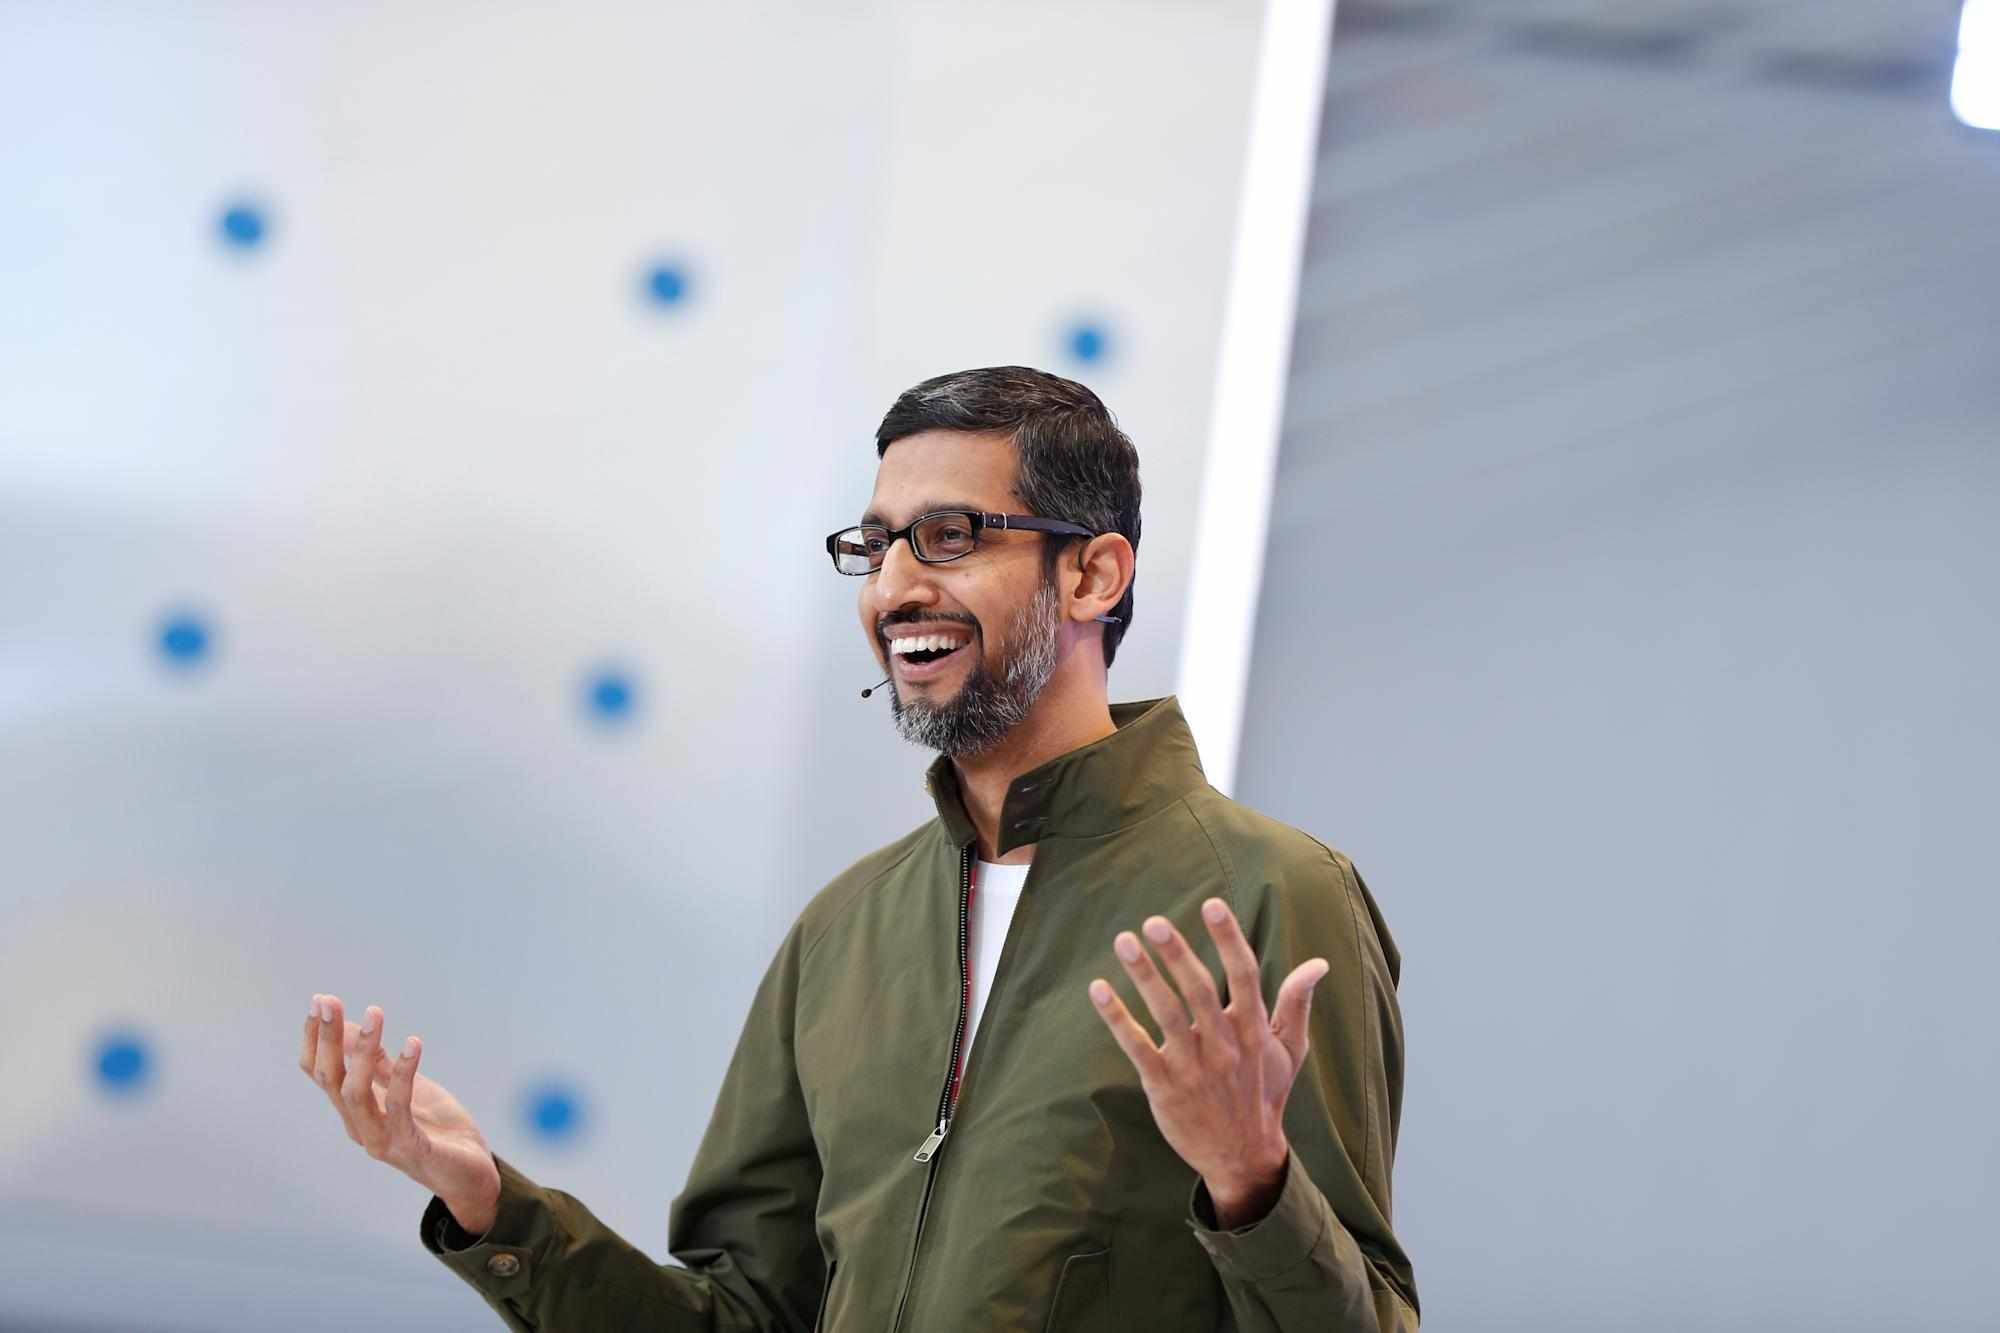 google ceo place went wrongplease